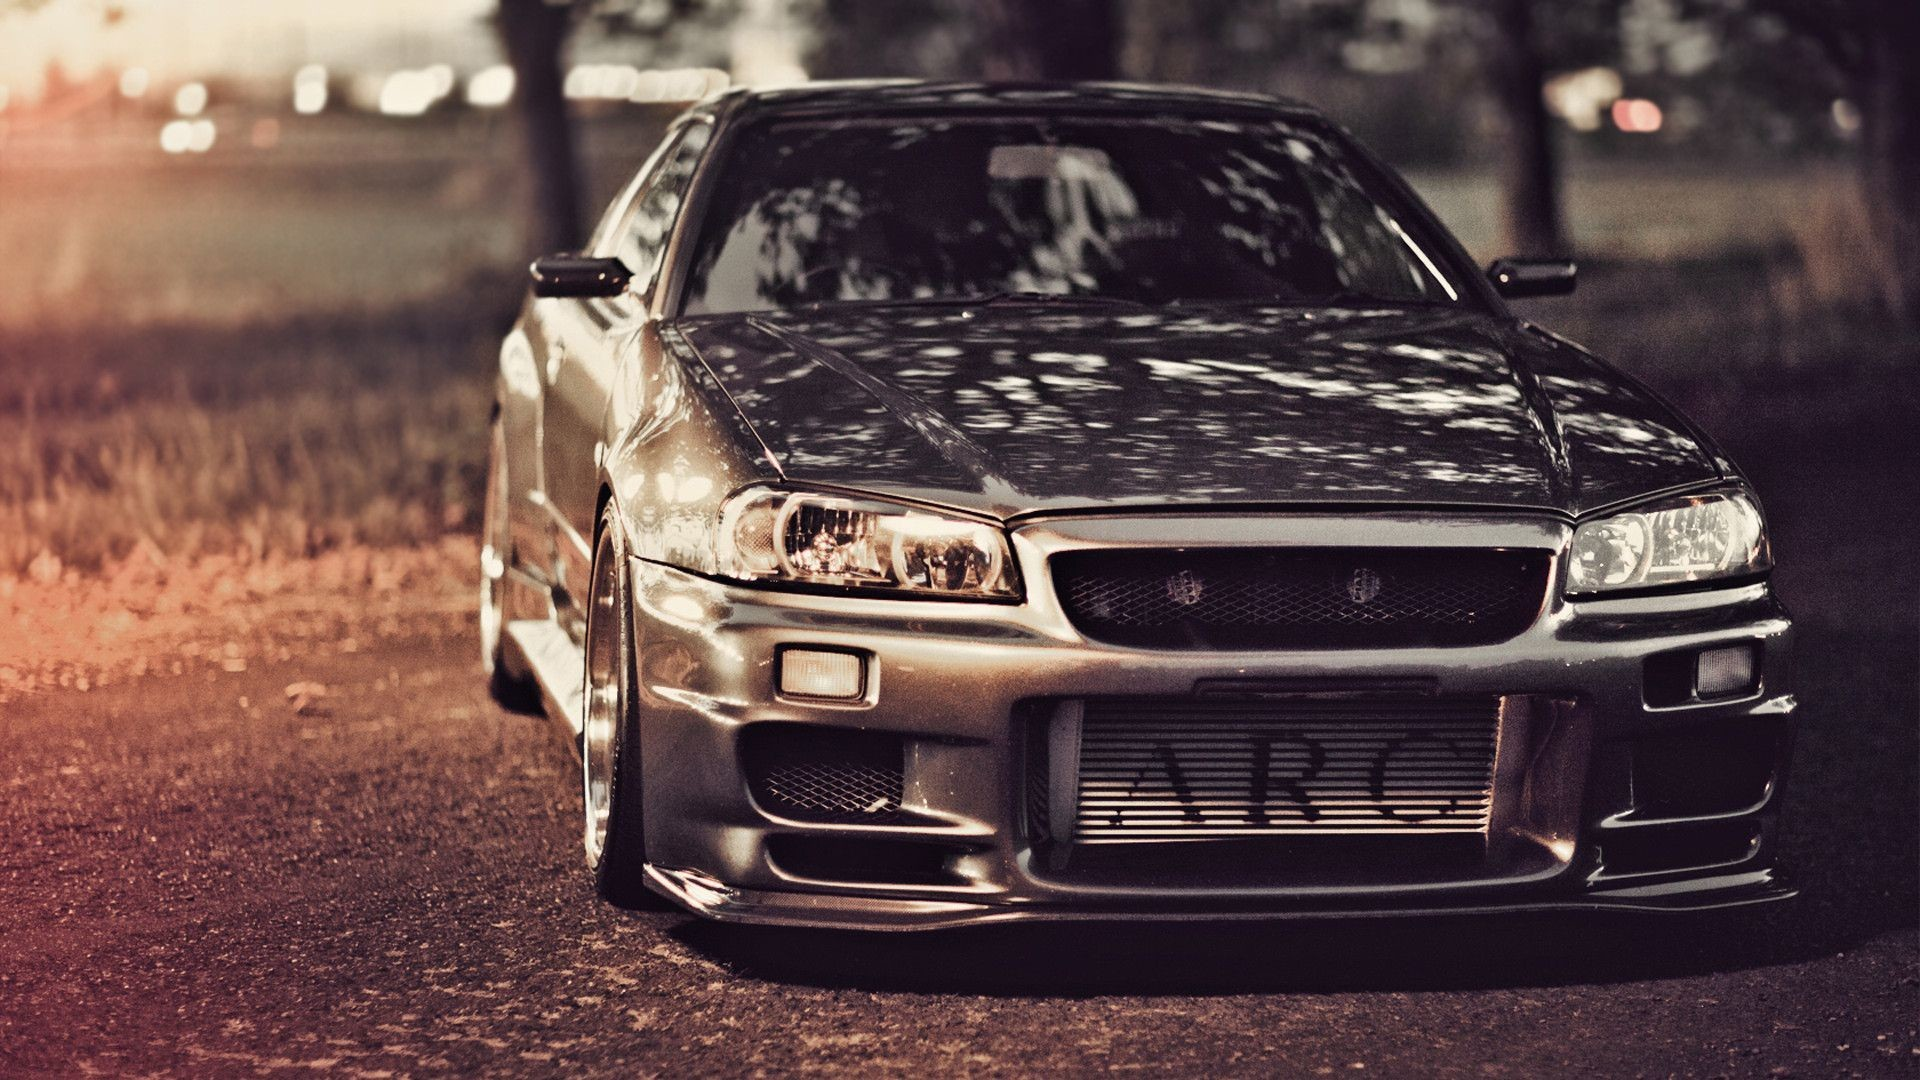 Nissan Skyline GTR R34 Wallpapers – Wallpaper Cave